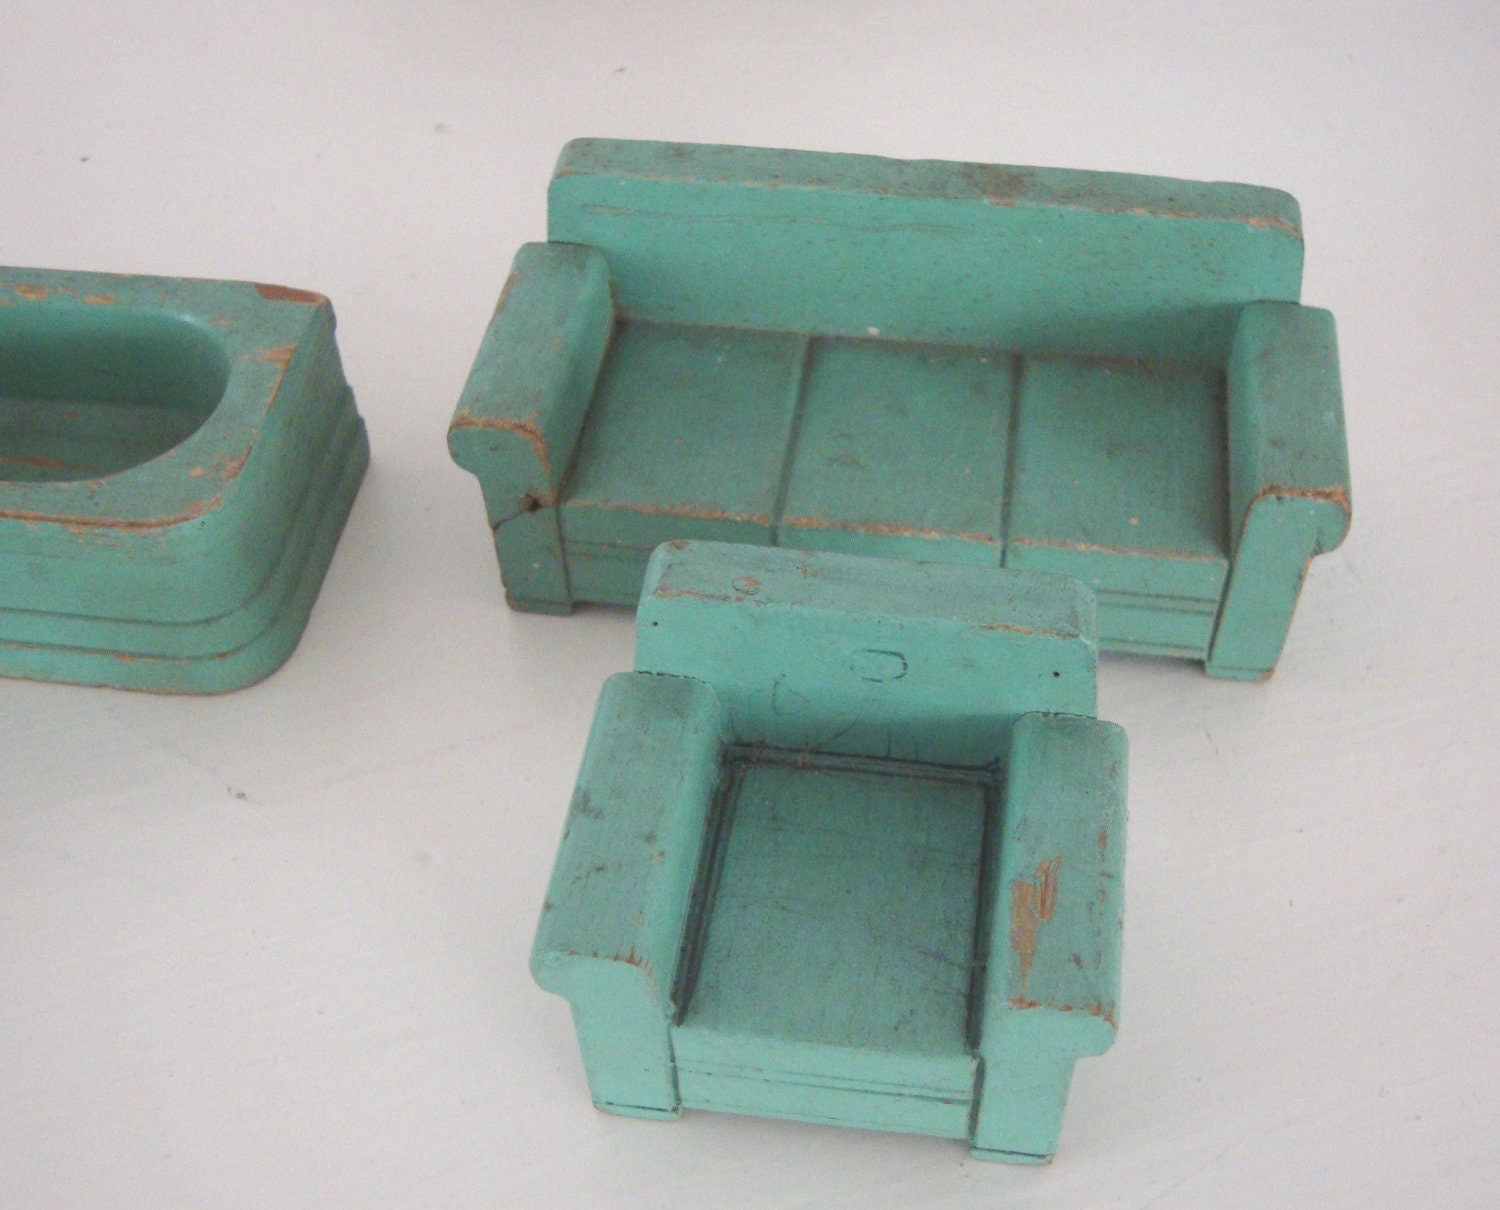 Aqua dollhouse furniture vintage wood wooden by iwantvintage Old wooden furniture